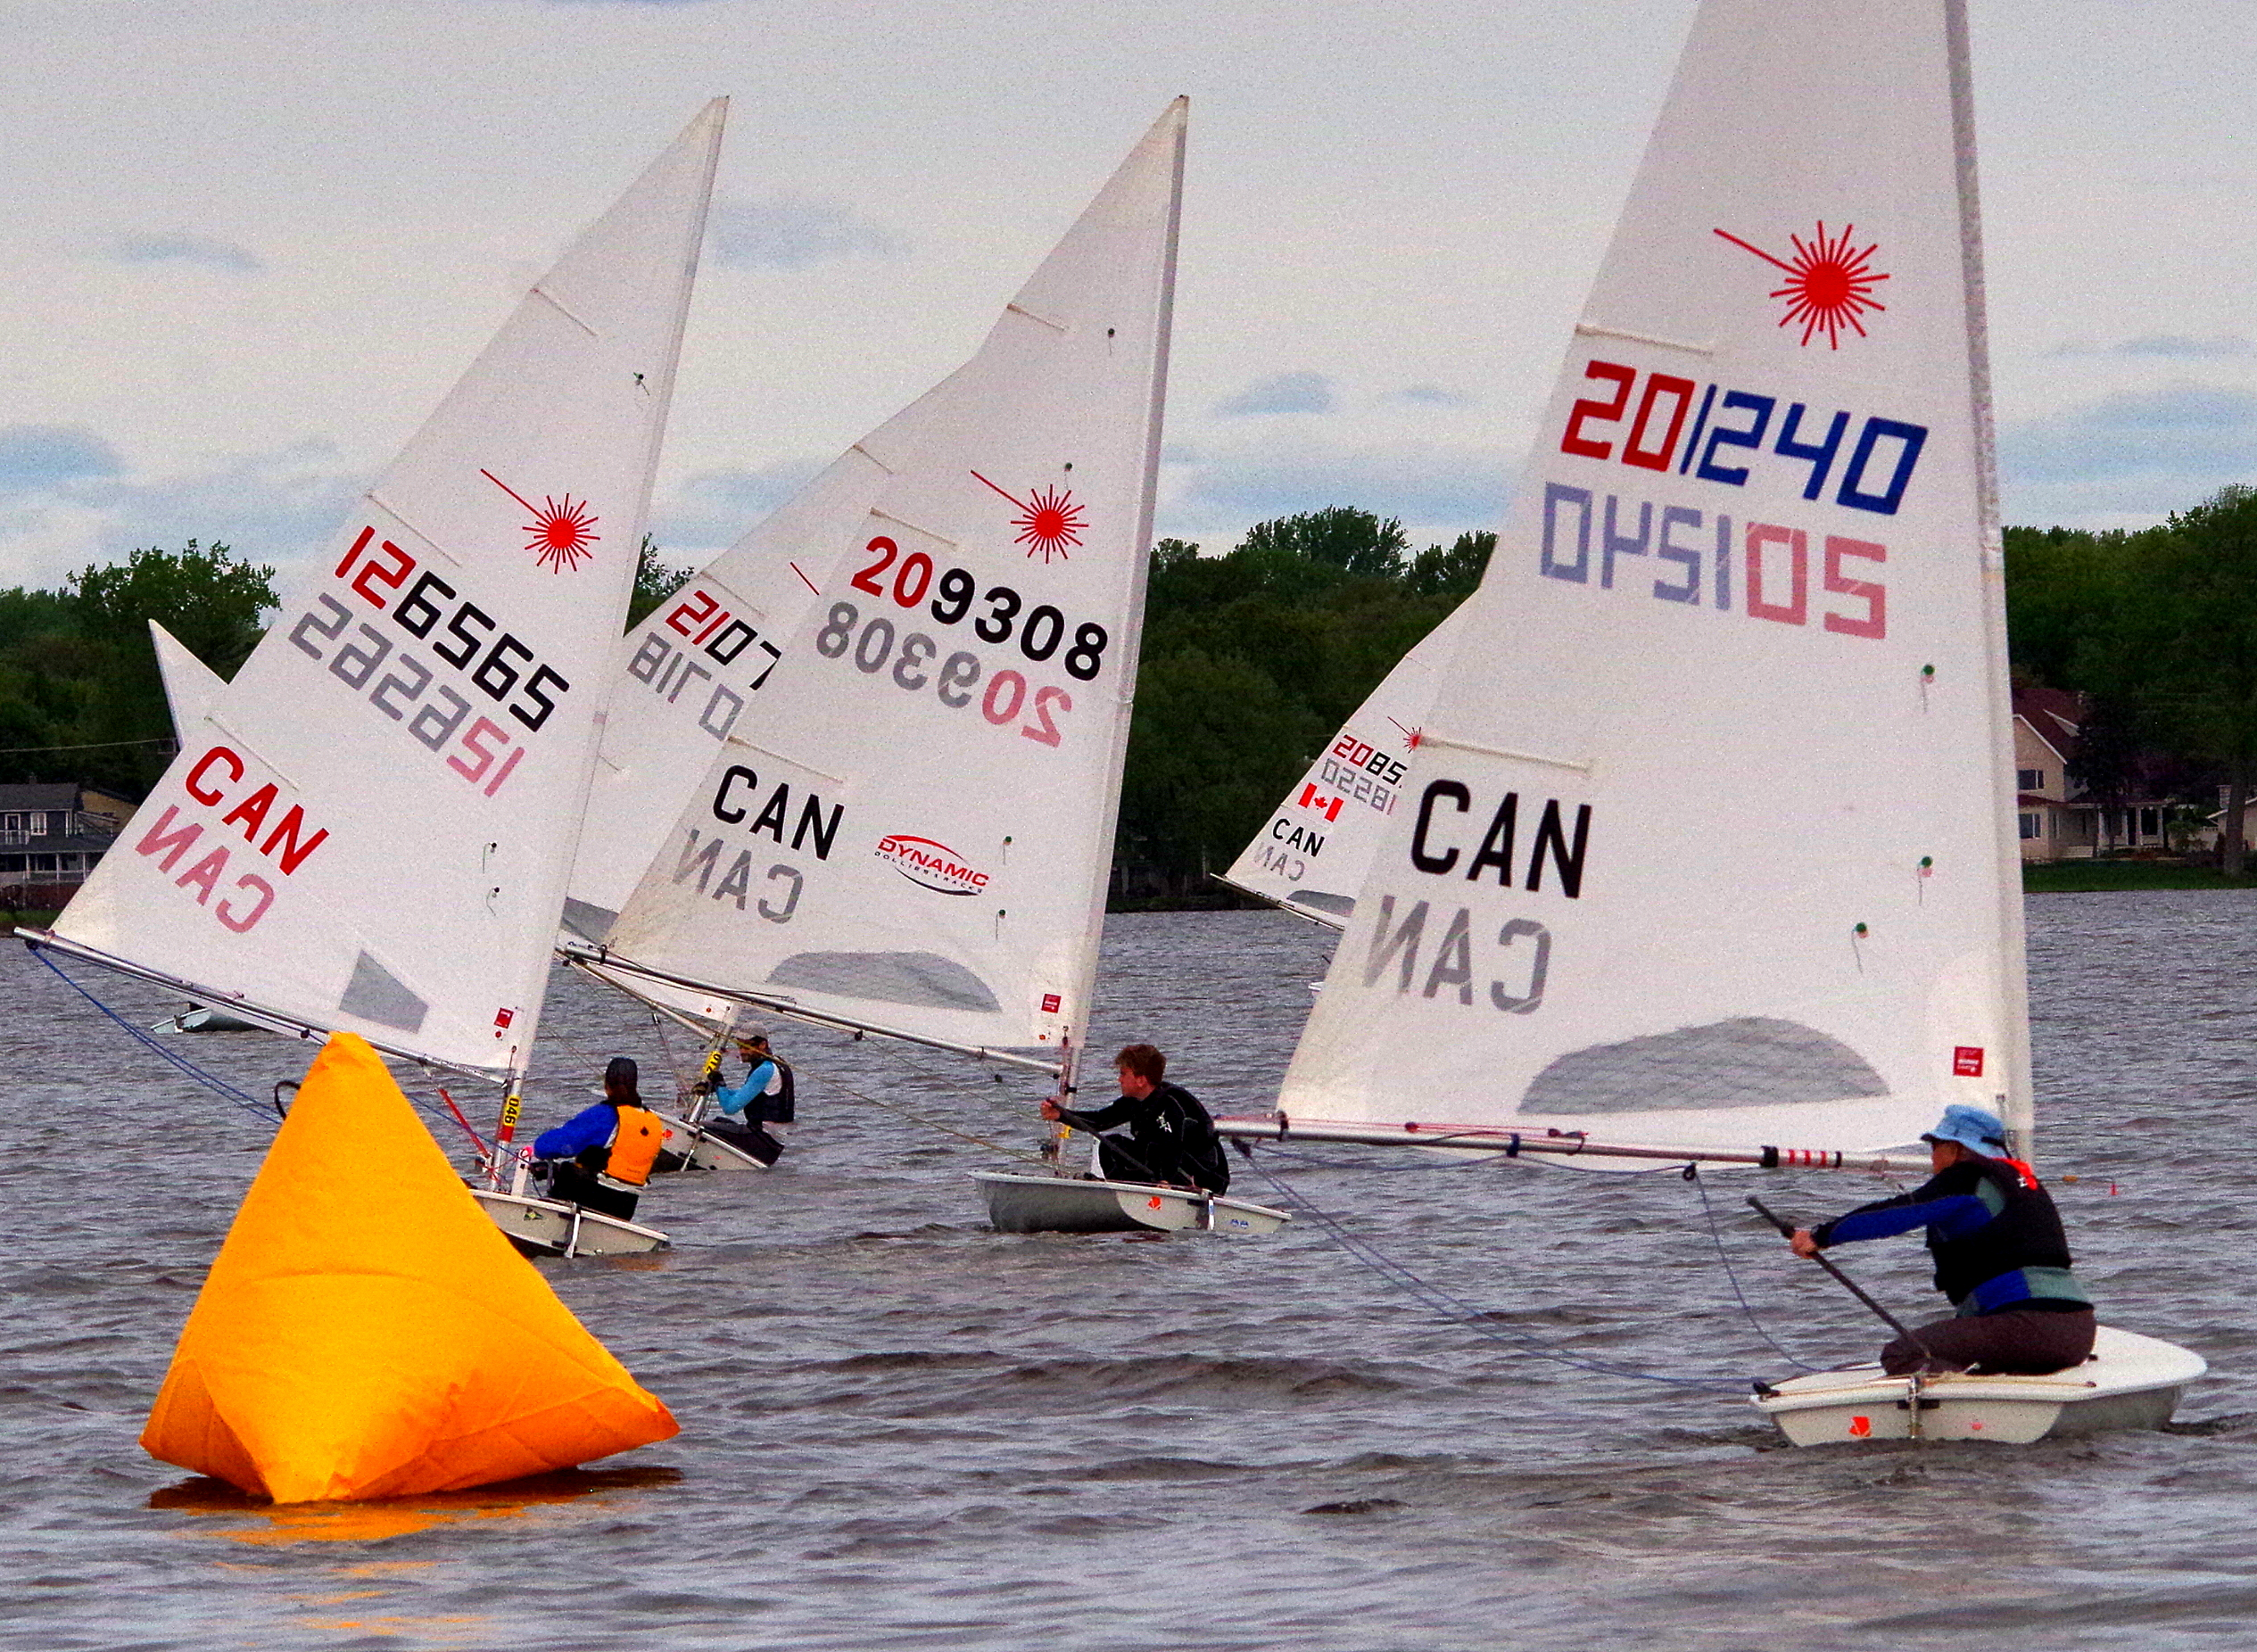 Laser Canadian Championships/Ian Bruce Memorial, Coralie Vittecoq finished 2nd in Radial